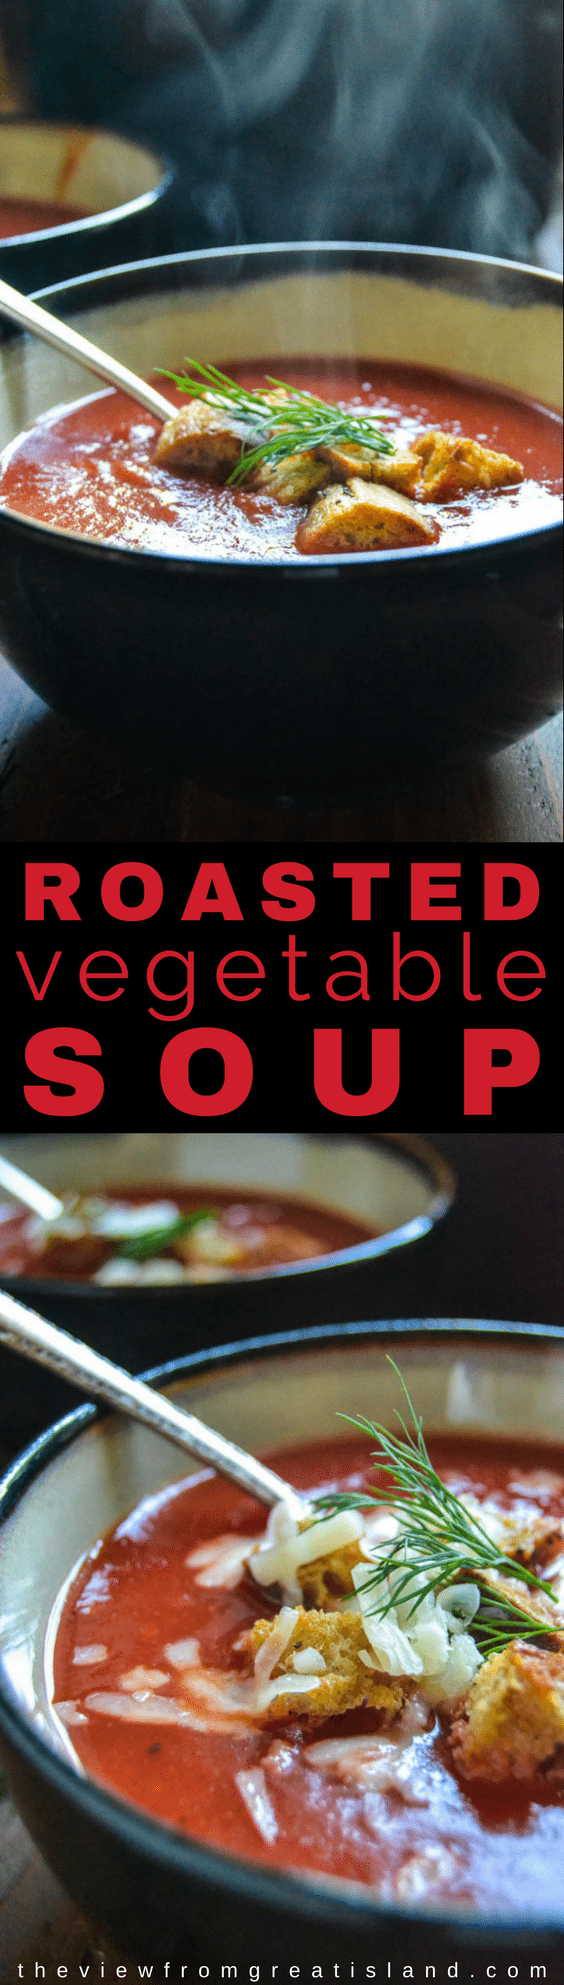 My healthy Roasted Winter Vegetable Soup is the most gorgeous shade of crimson you've ever seen! This comforting vegetable soup is full of vitamins and antioxidants to get you through the winter in tip top shape. #soup #healthy #comfortfood #beetsoup #vegetablesoup #roastedvegetables #wintersquashsoup #squashsoup